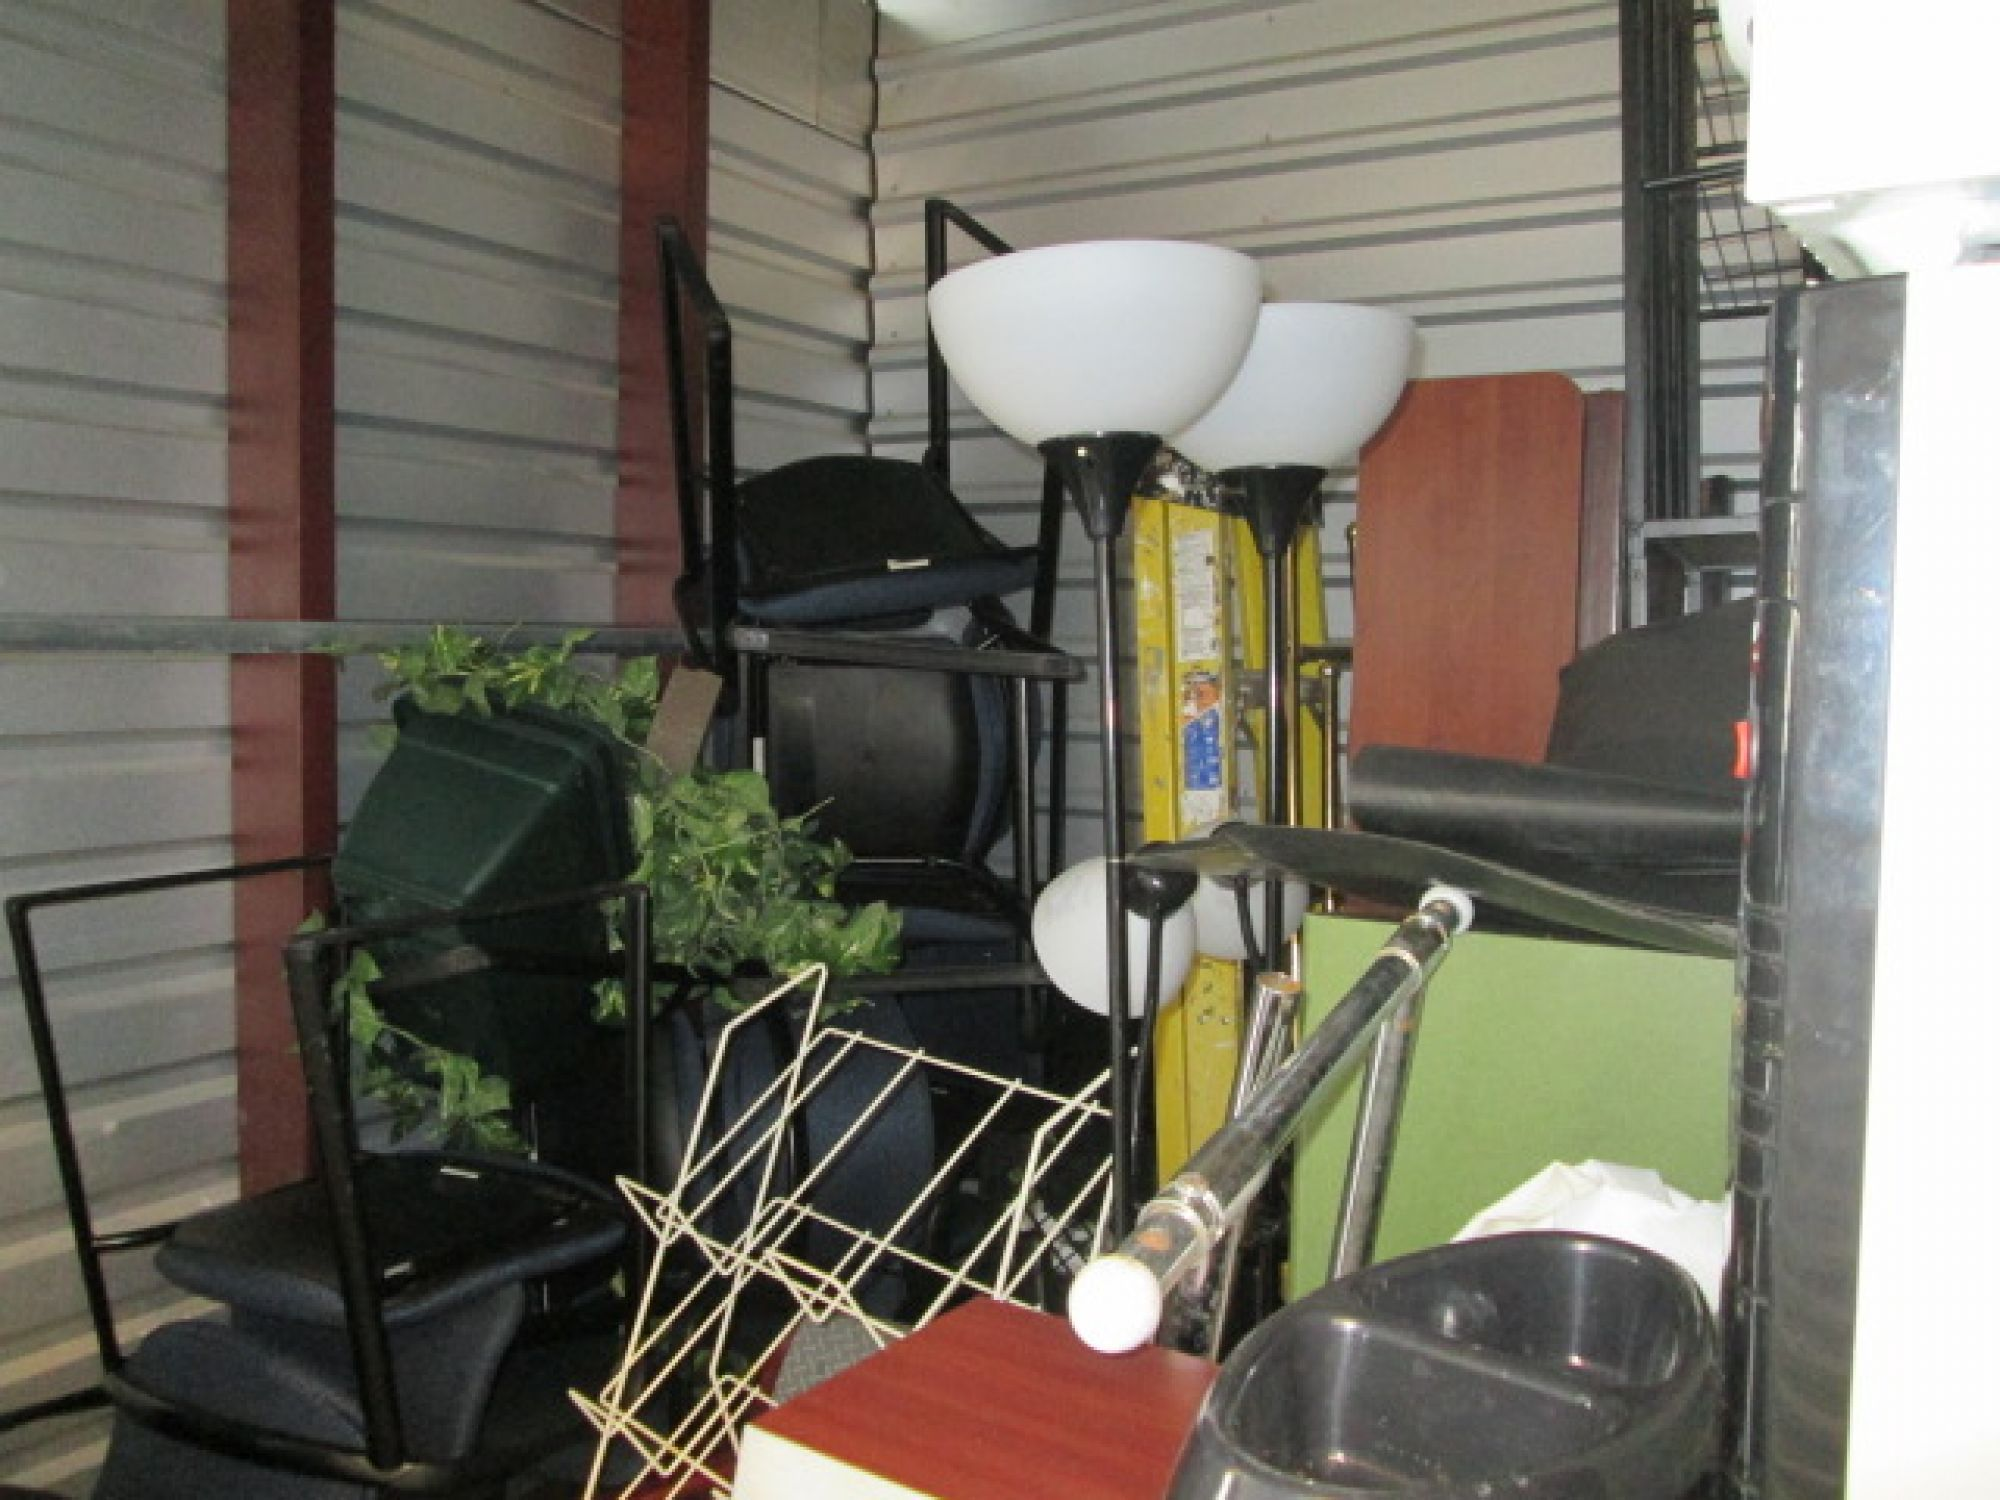 For Online And Onsite Storage Auction Services In The United States Canada  New Site Which Provides